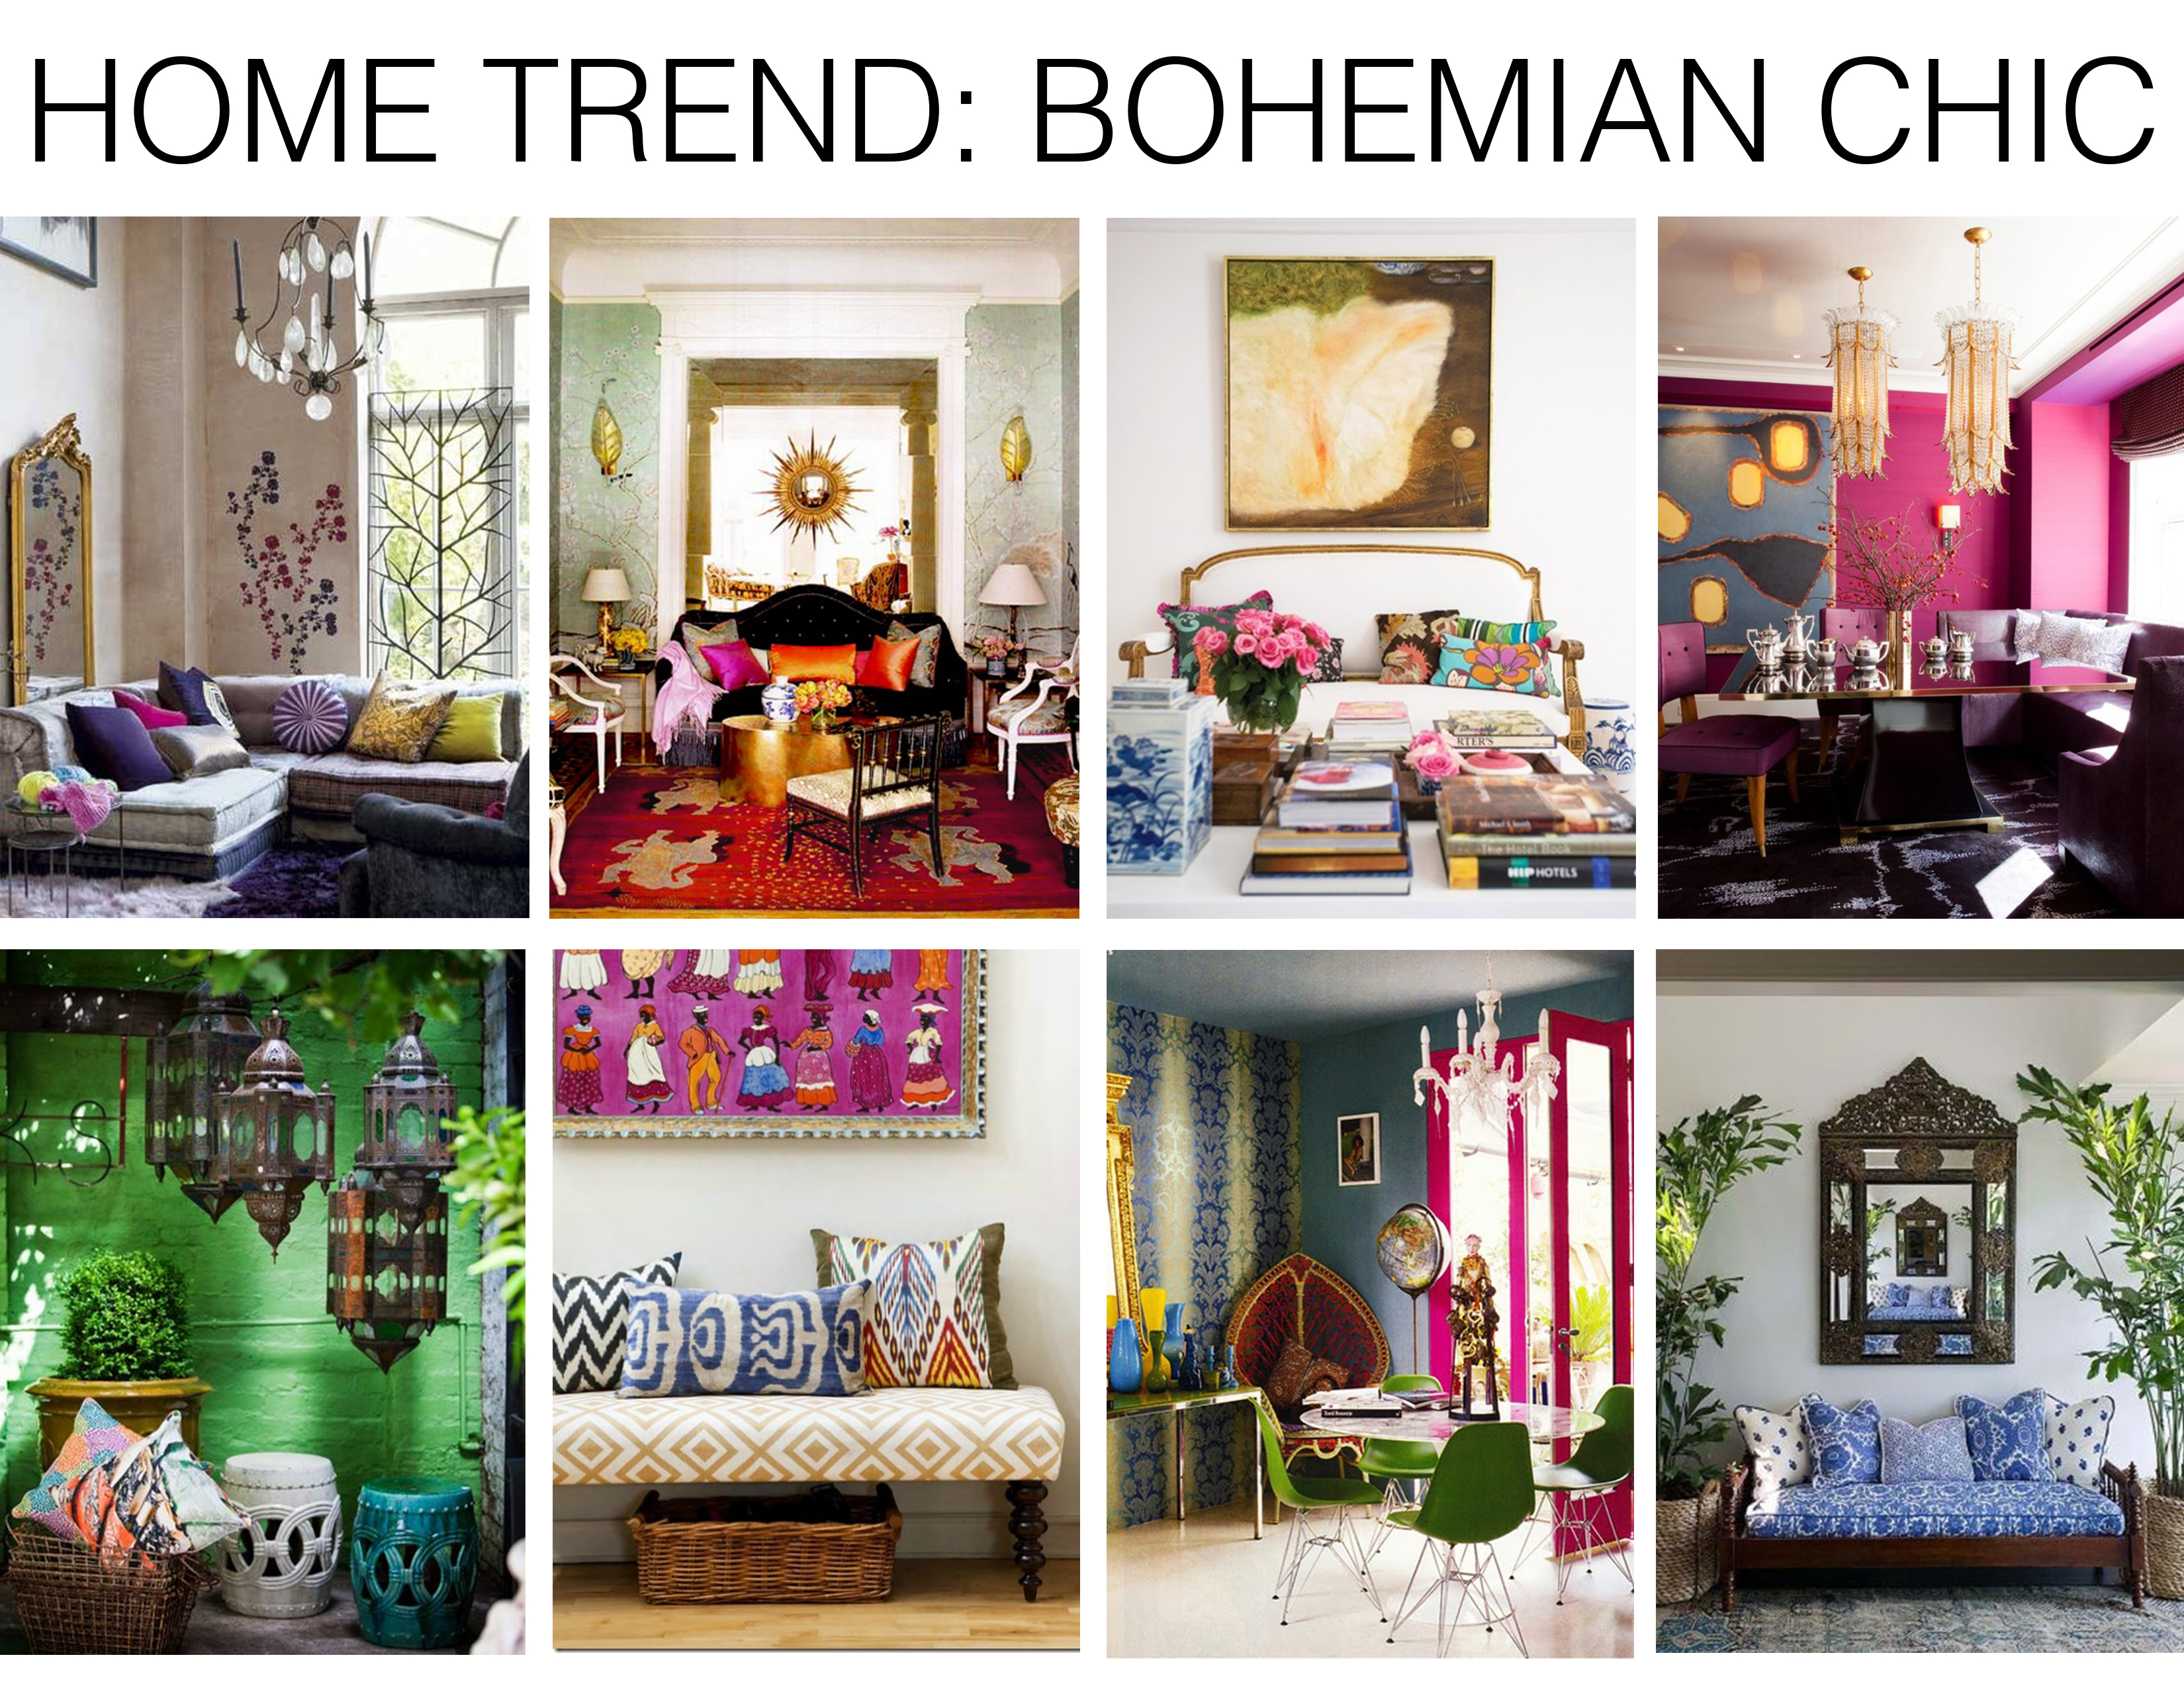 Home trend bohemian chic mountain home decor - Stylish home design inspiration ideas in different styles ...